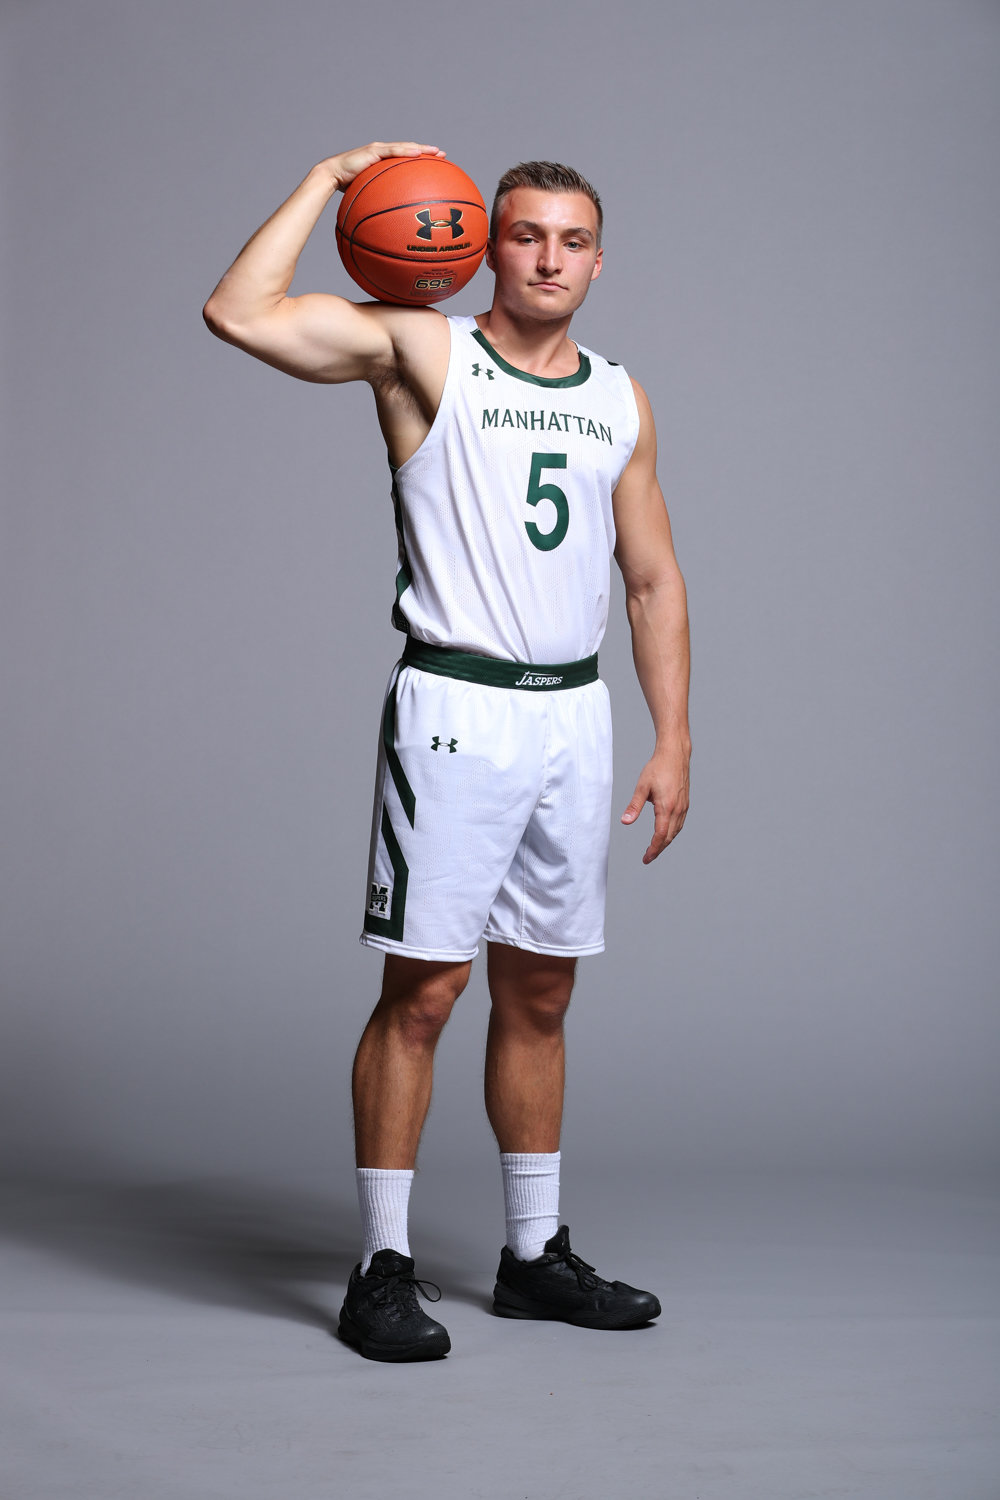 Manhattan College senior Jesse Boyce has a lot more on his plate than basketball these days as a family tragedy changed the direction of his life.